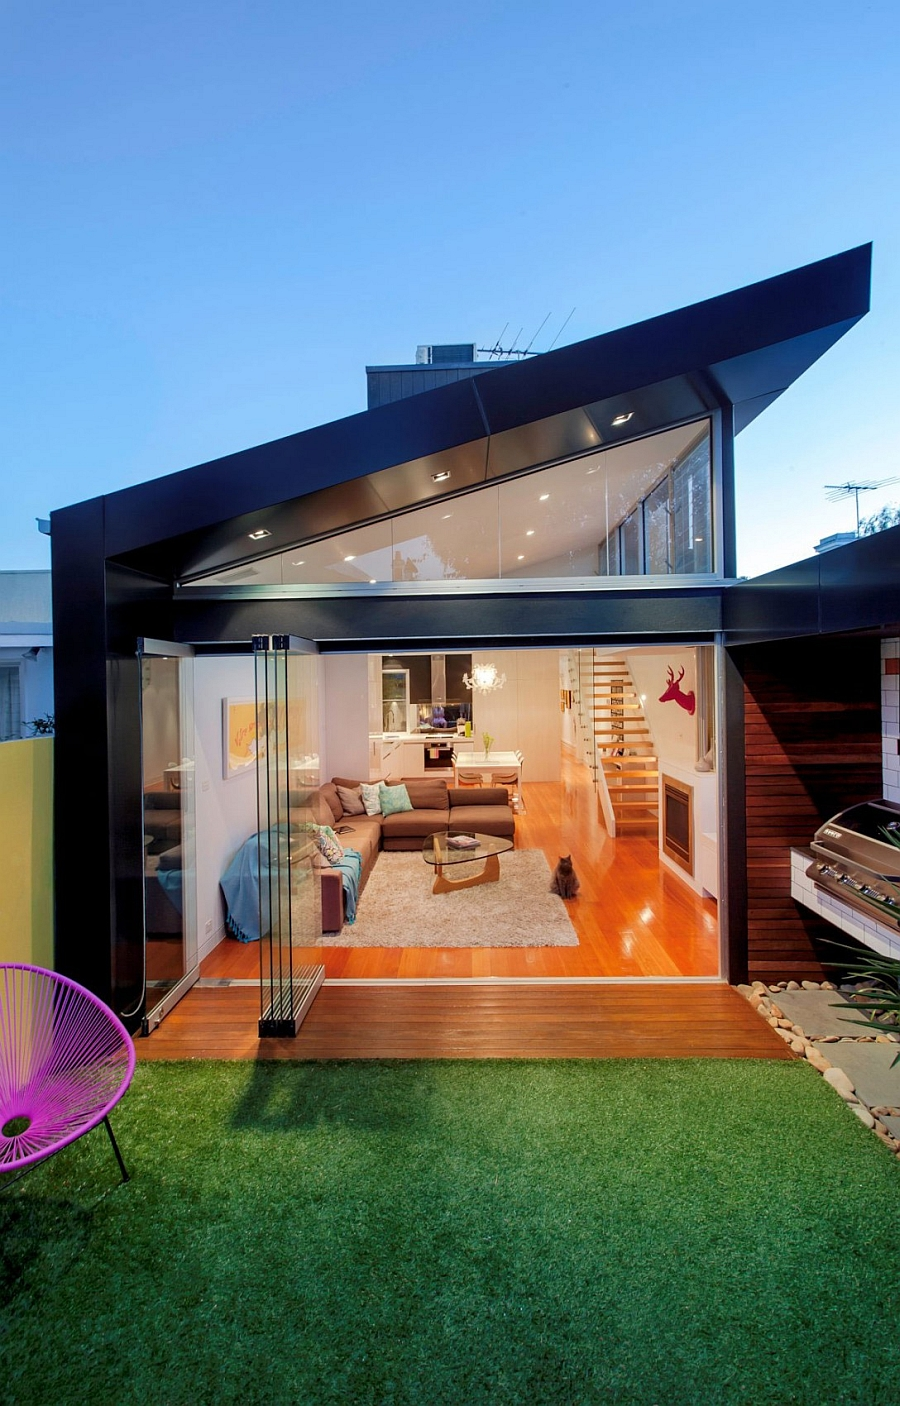 Contemporary glass extension to the traditional Aussie home